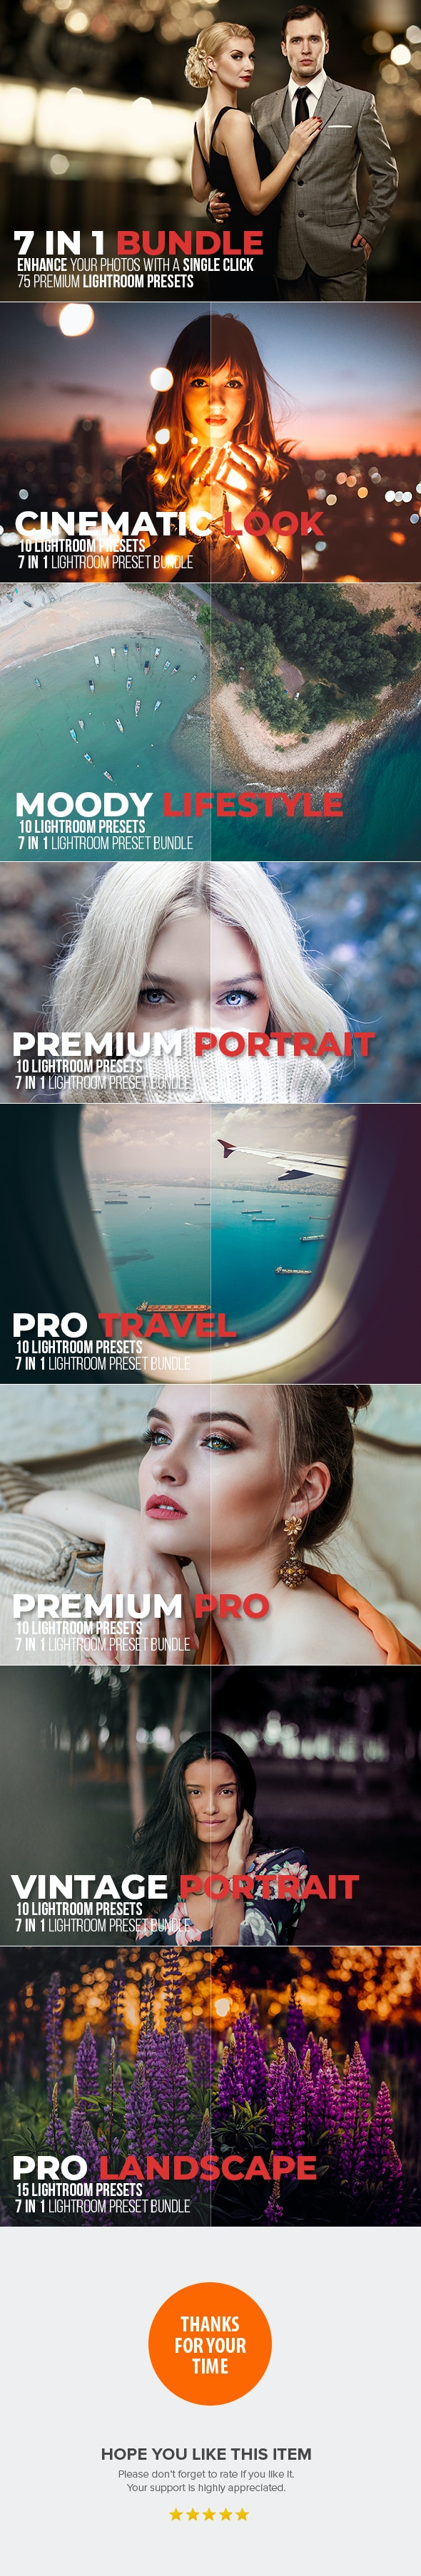 7 IN 1 Lightroom Presets Bundle - Lightroom Presets Add-ons